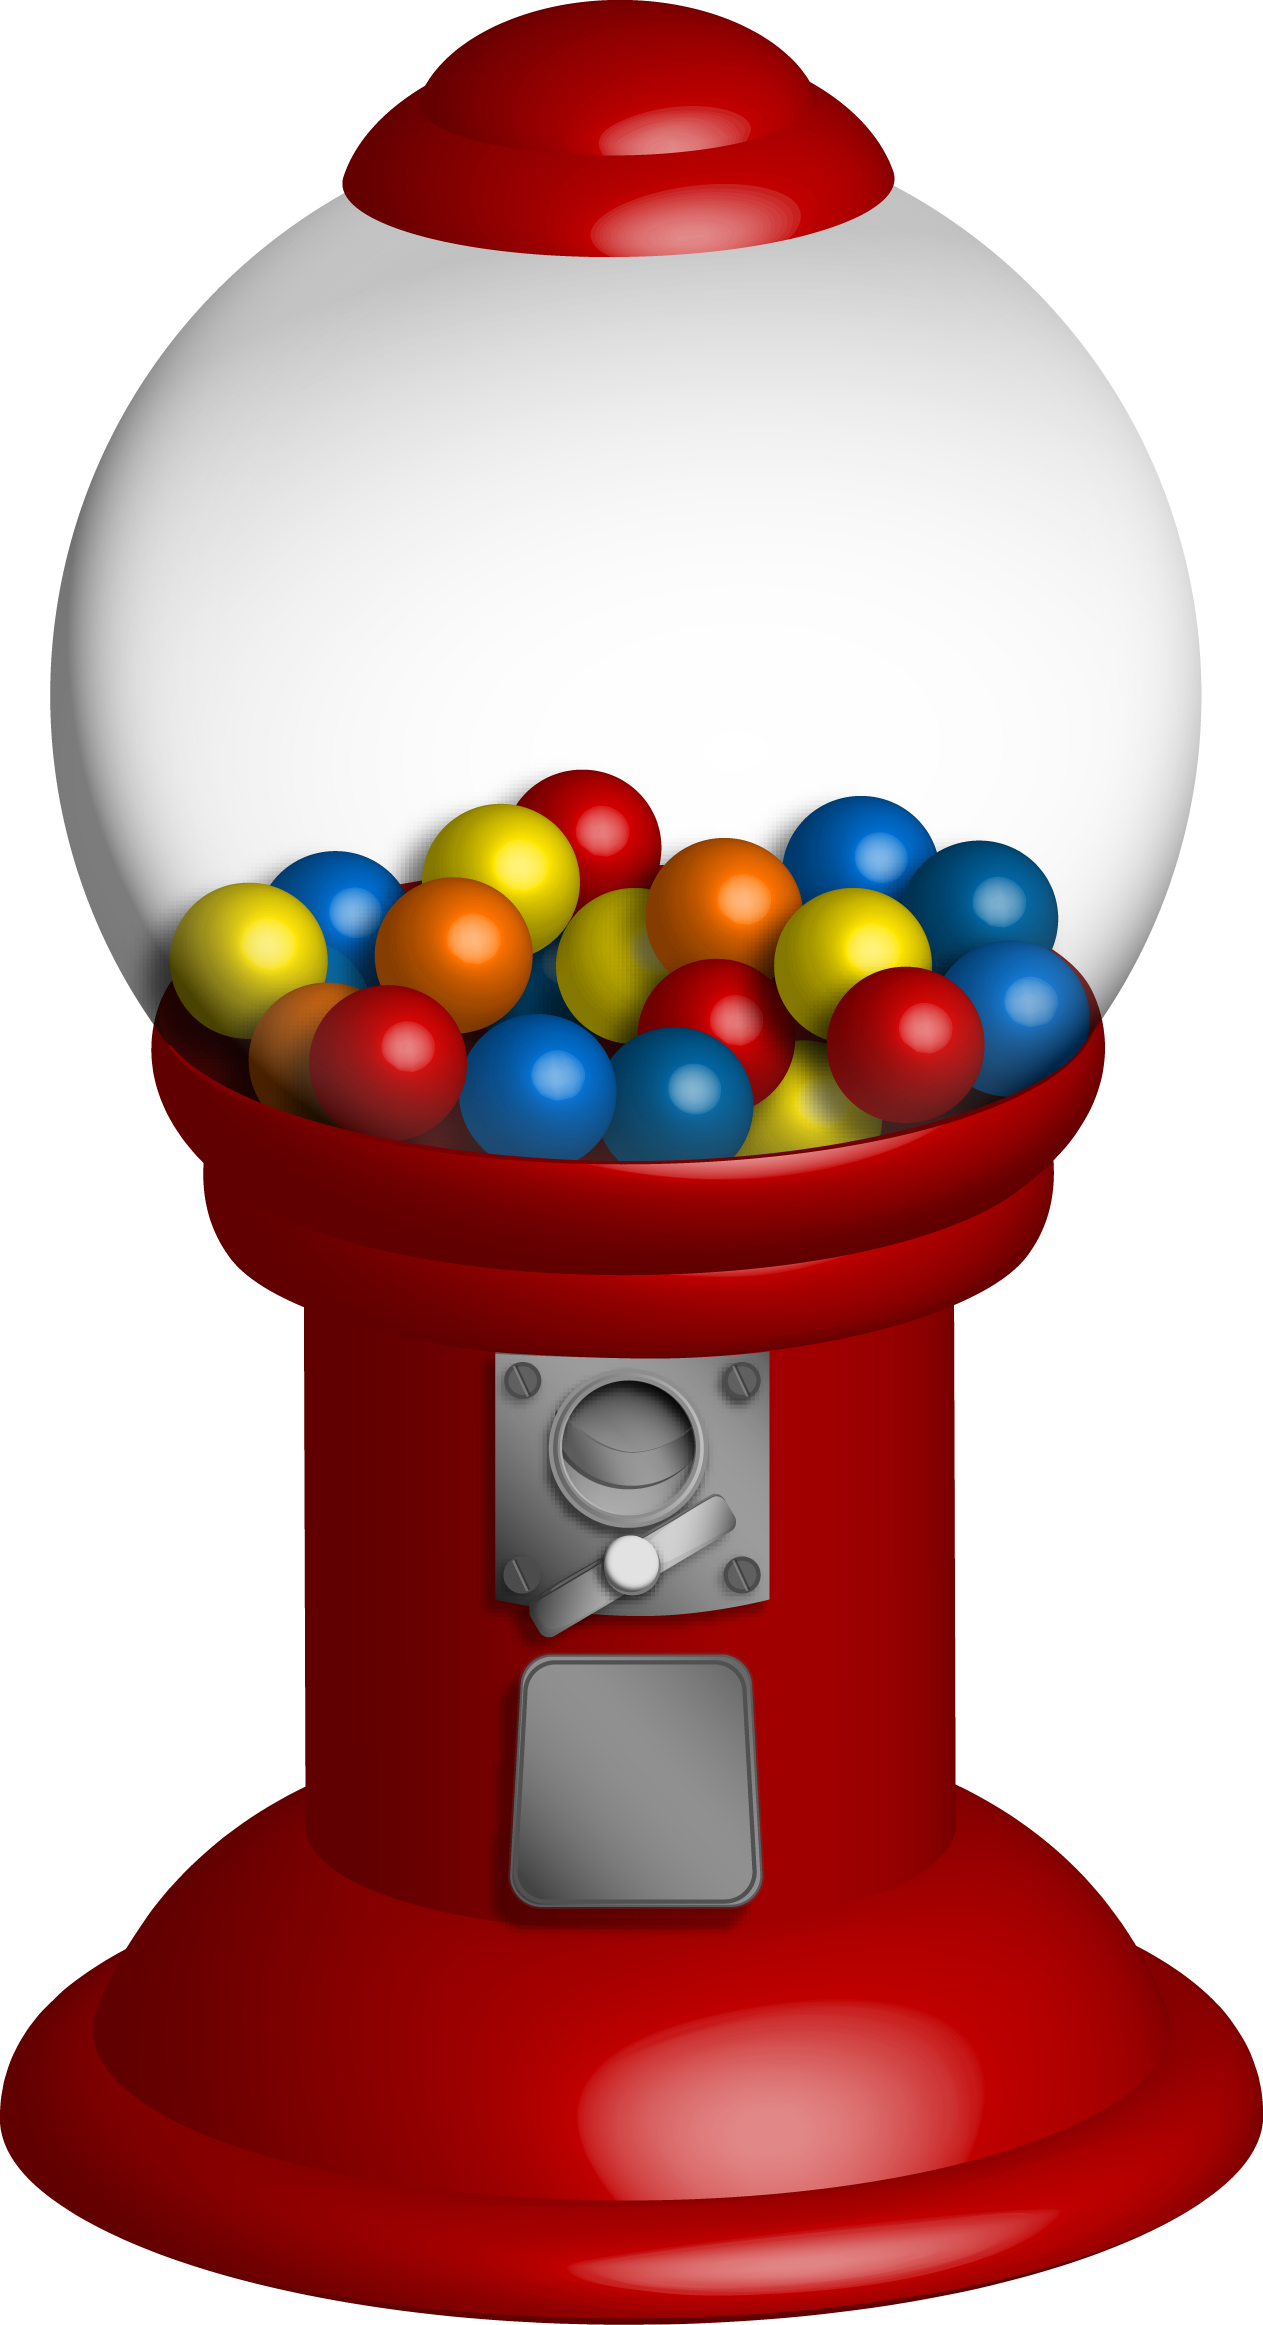 Pictures Of Gumball Machines - ClipArt Best